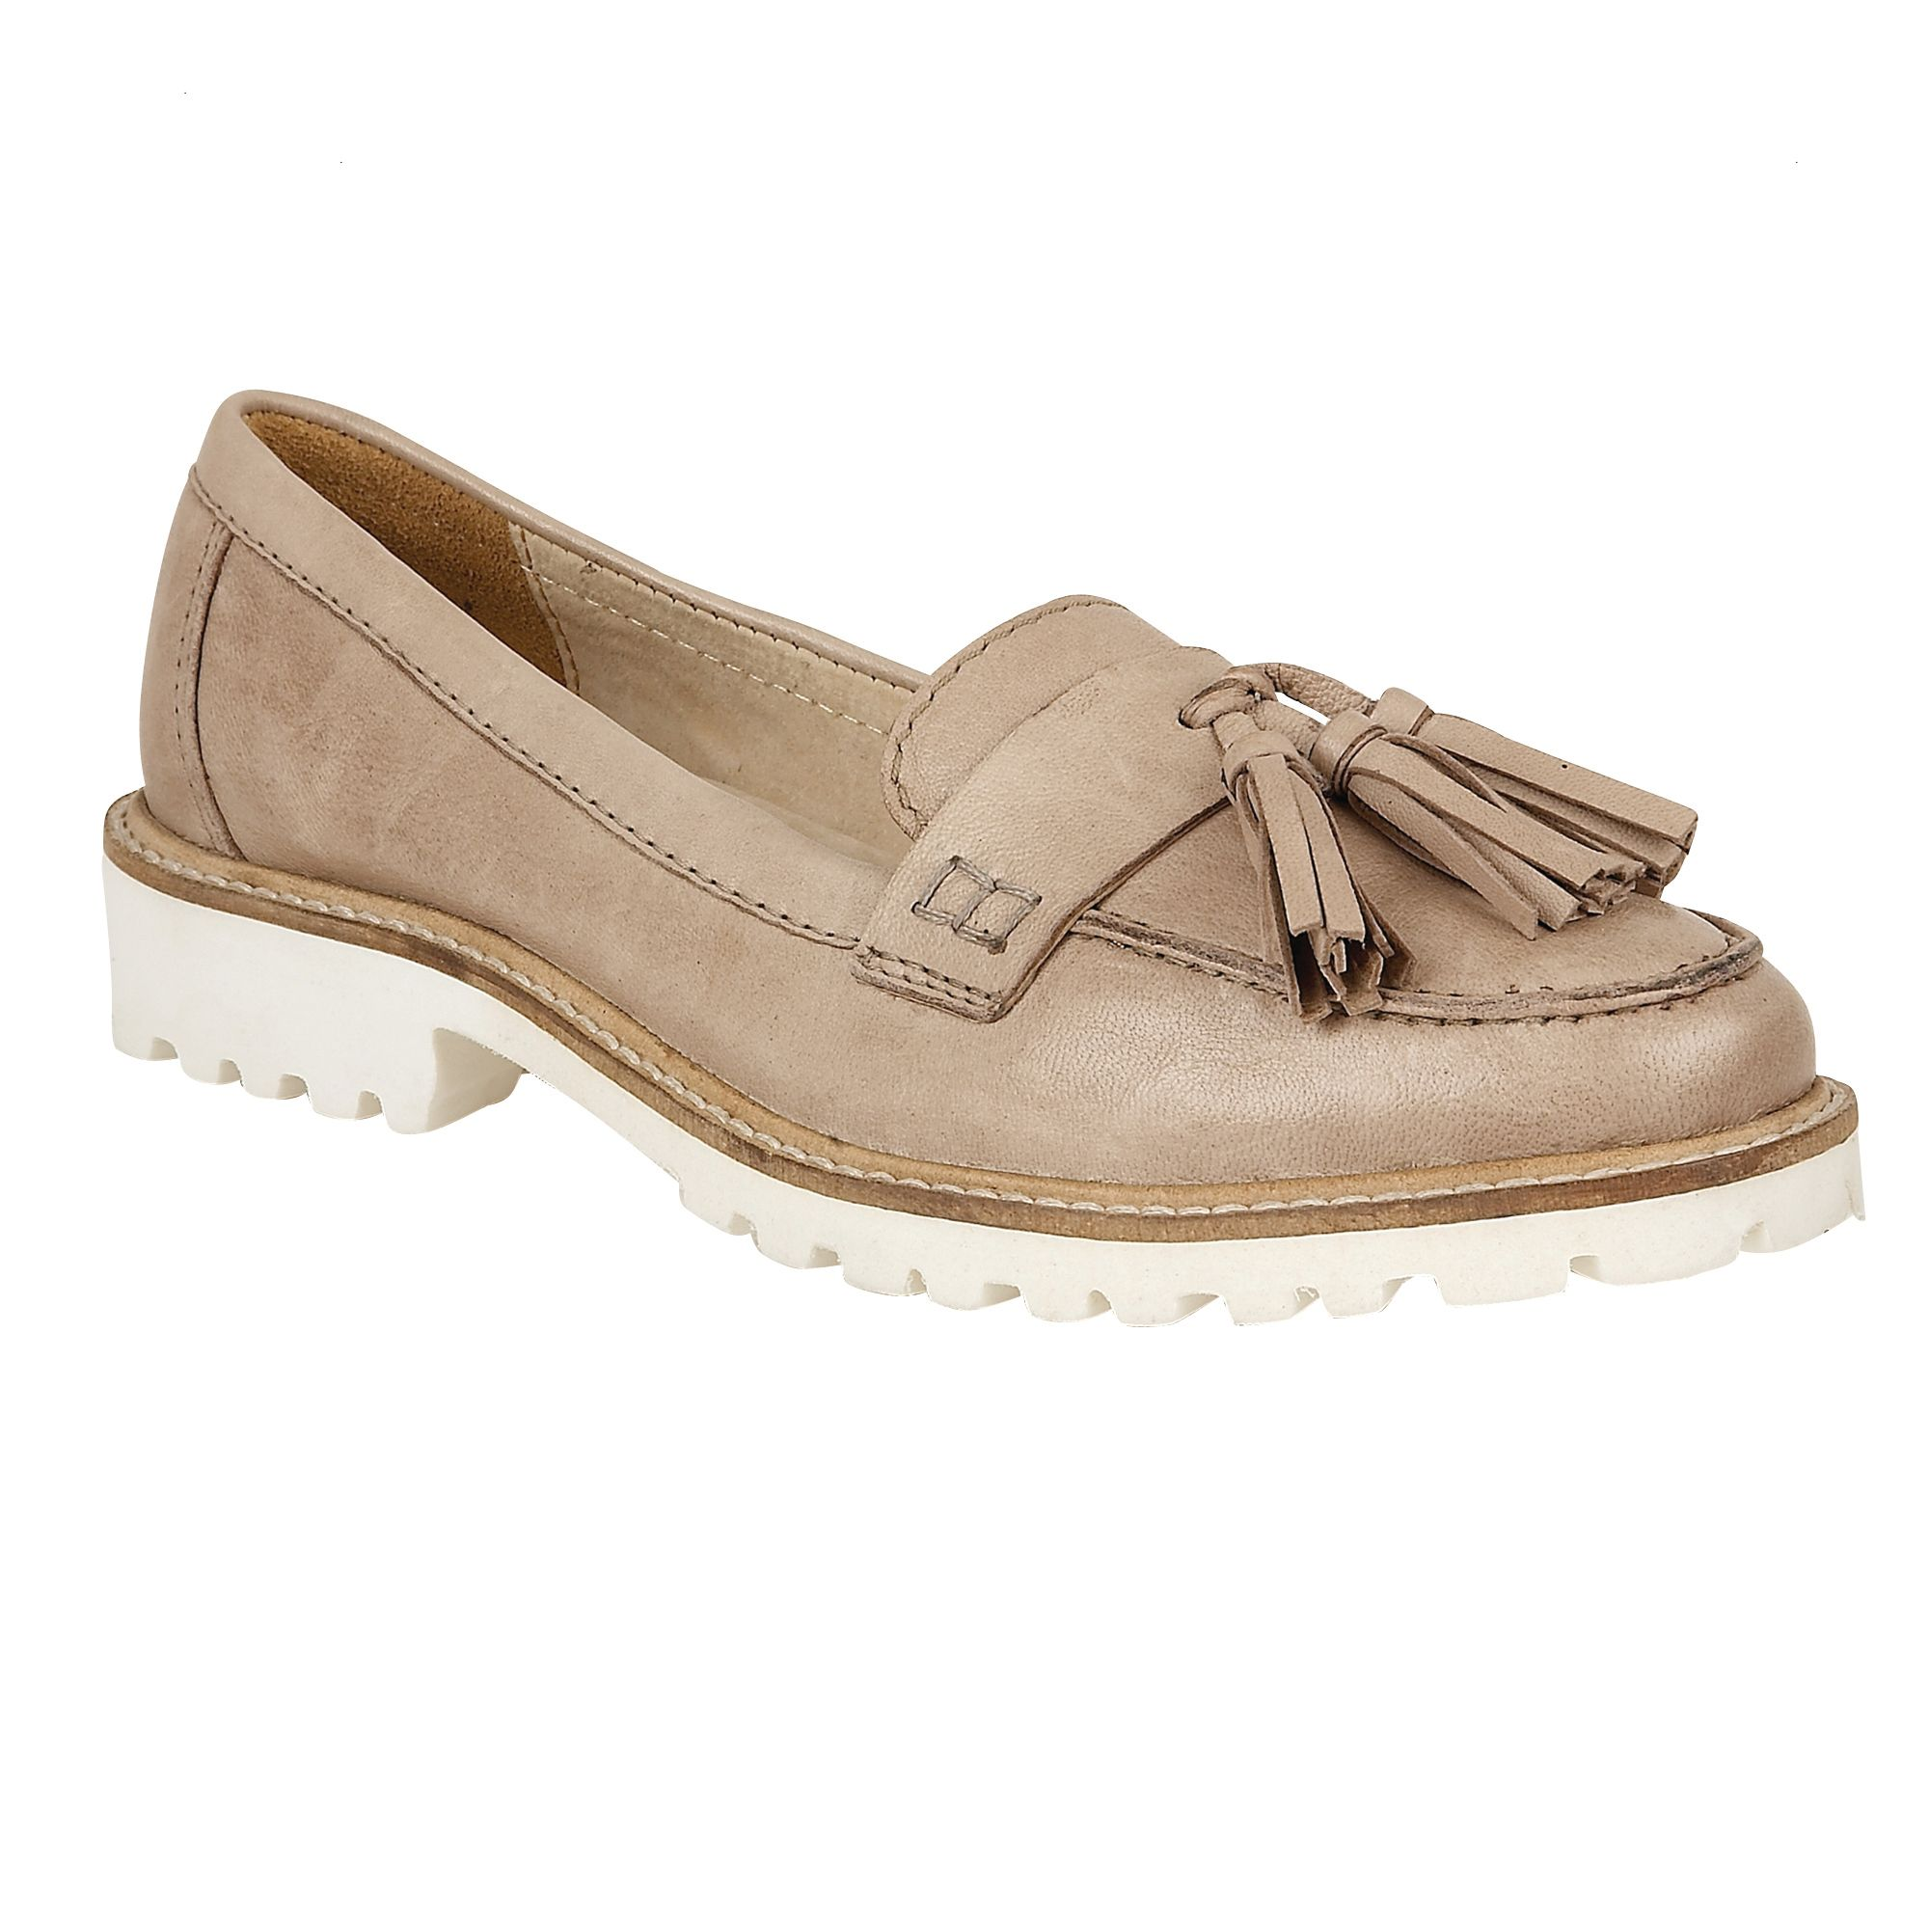 Ravel Ravel Midway cleated sole slip on loafers, Ecru